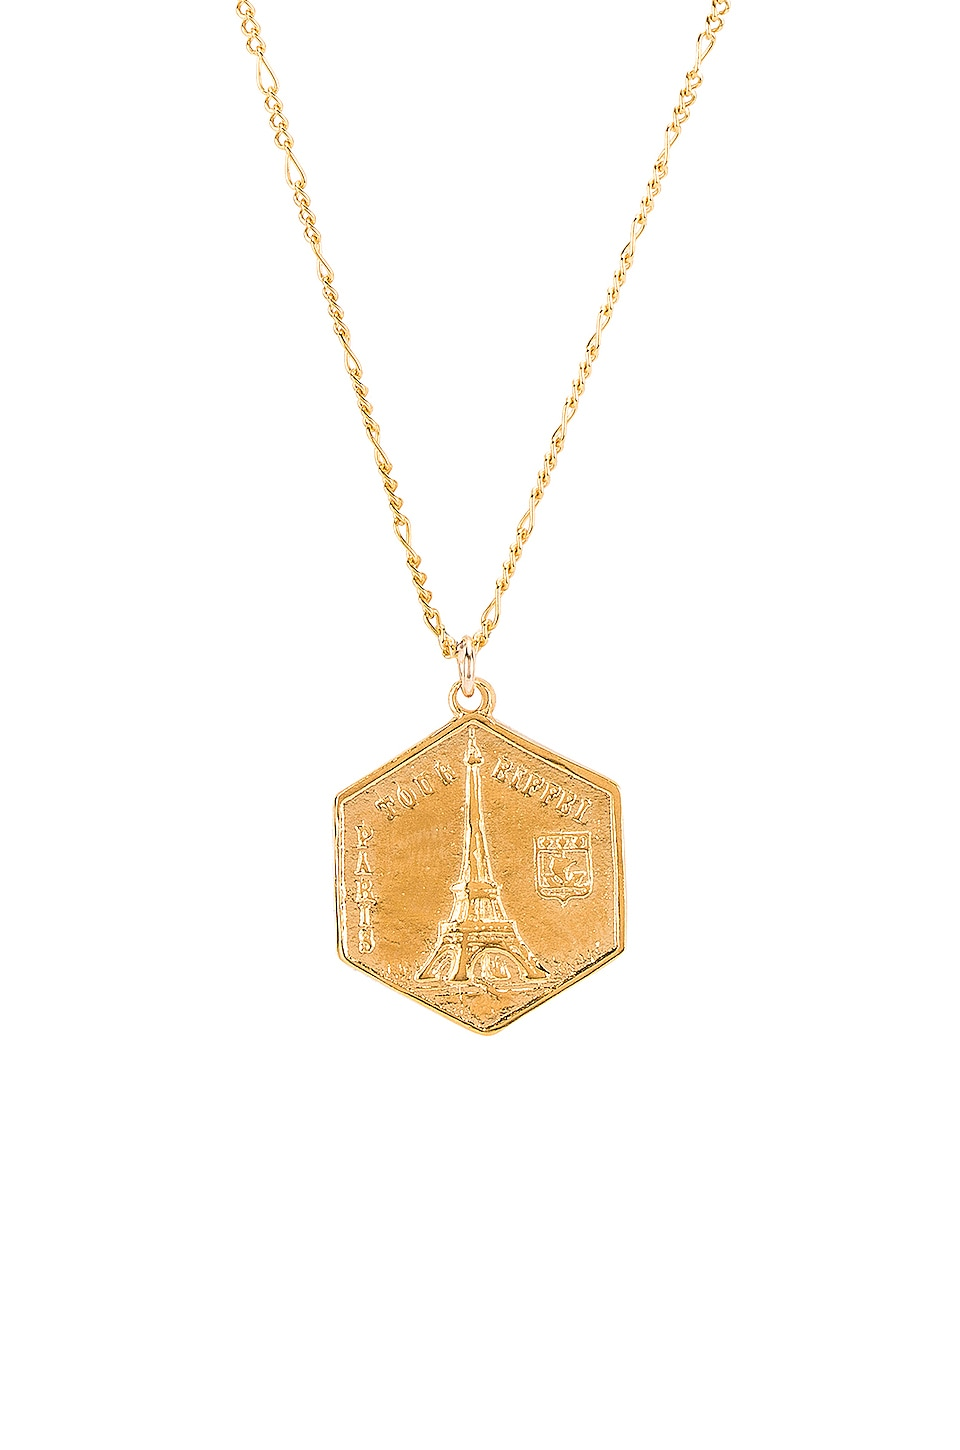 Natalie B Jewelry COLLAR TOUR DE EIFFEL